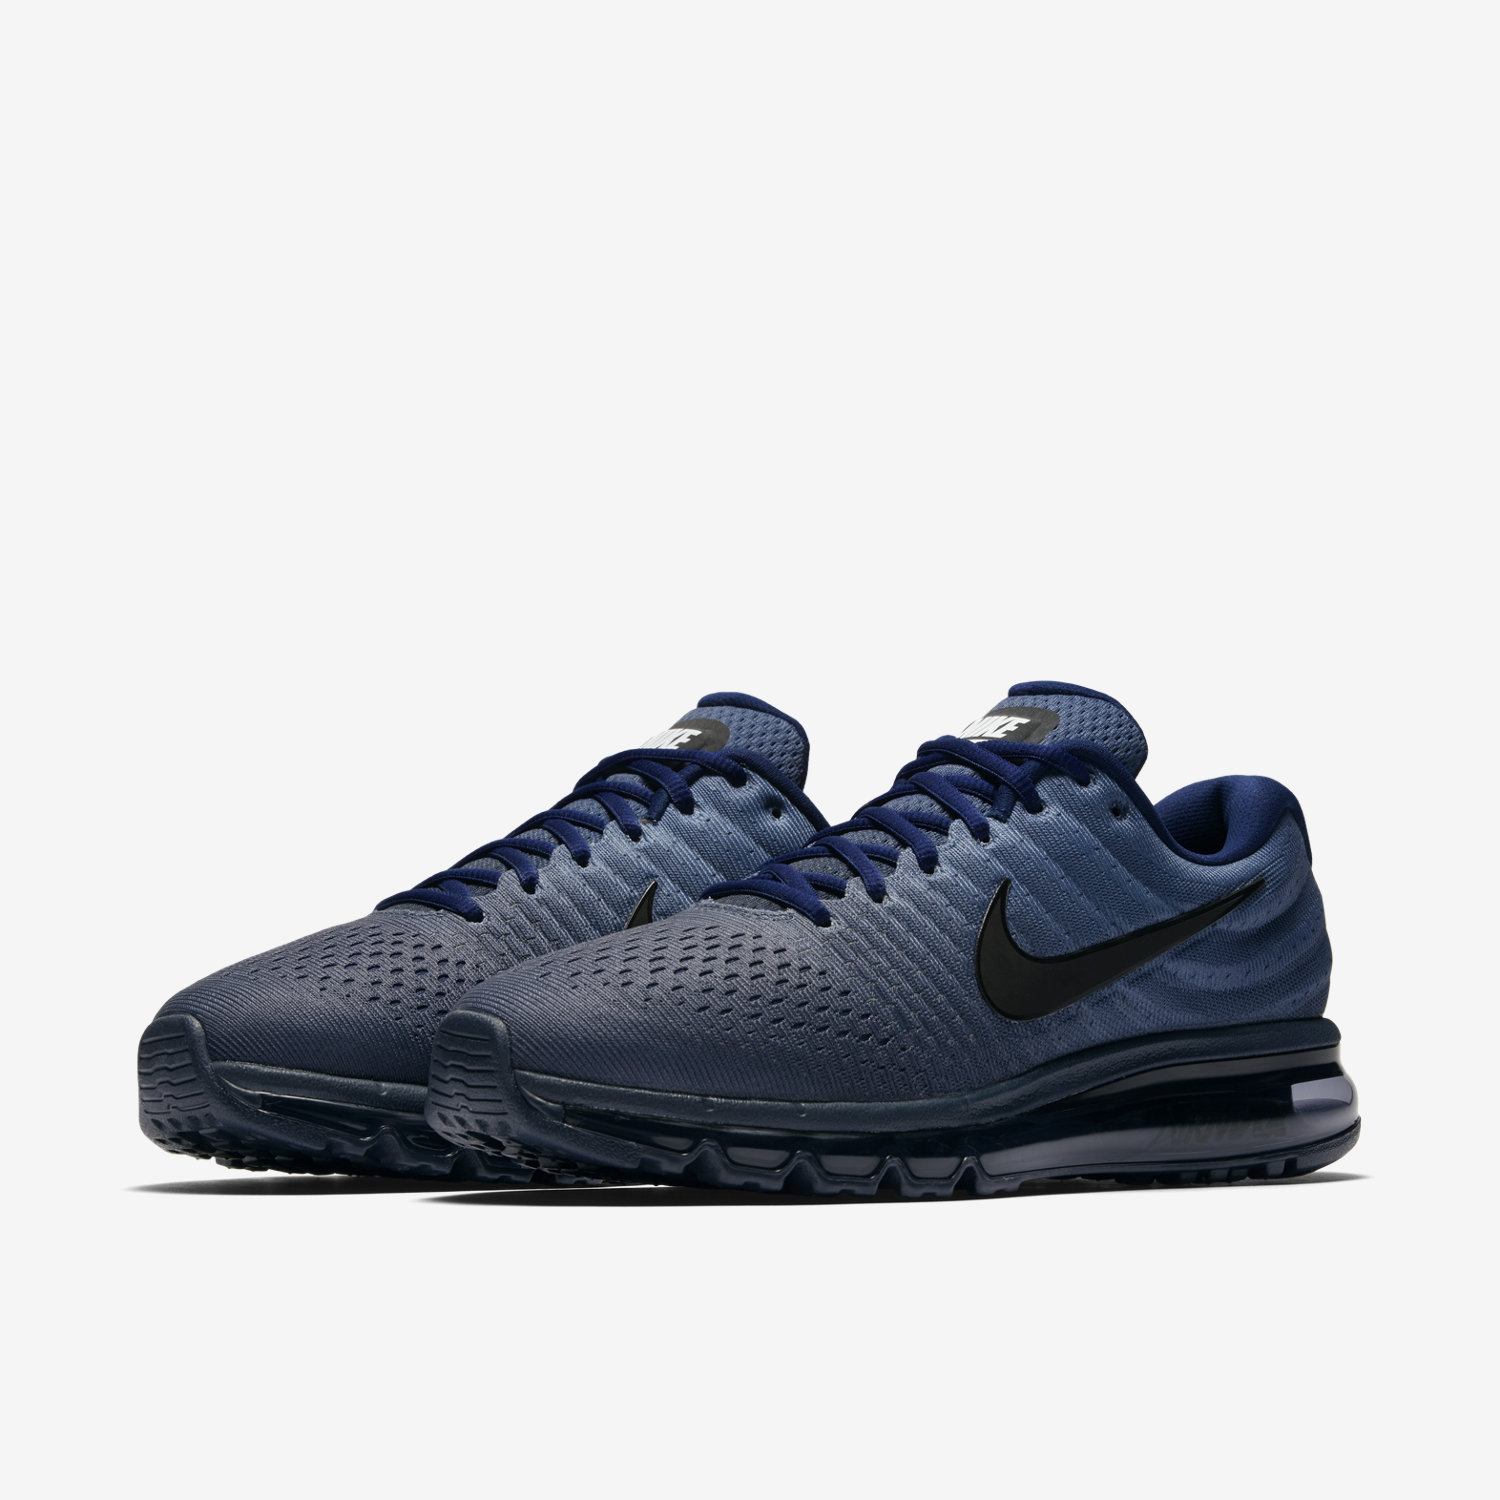 Cheap Nike 2 Air Max Cheap Nike Air Max 2017 Kellogg Community College